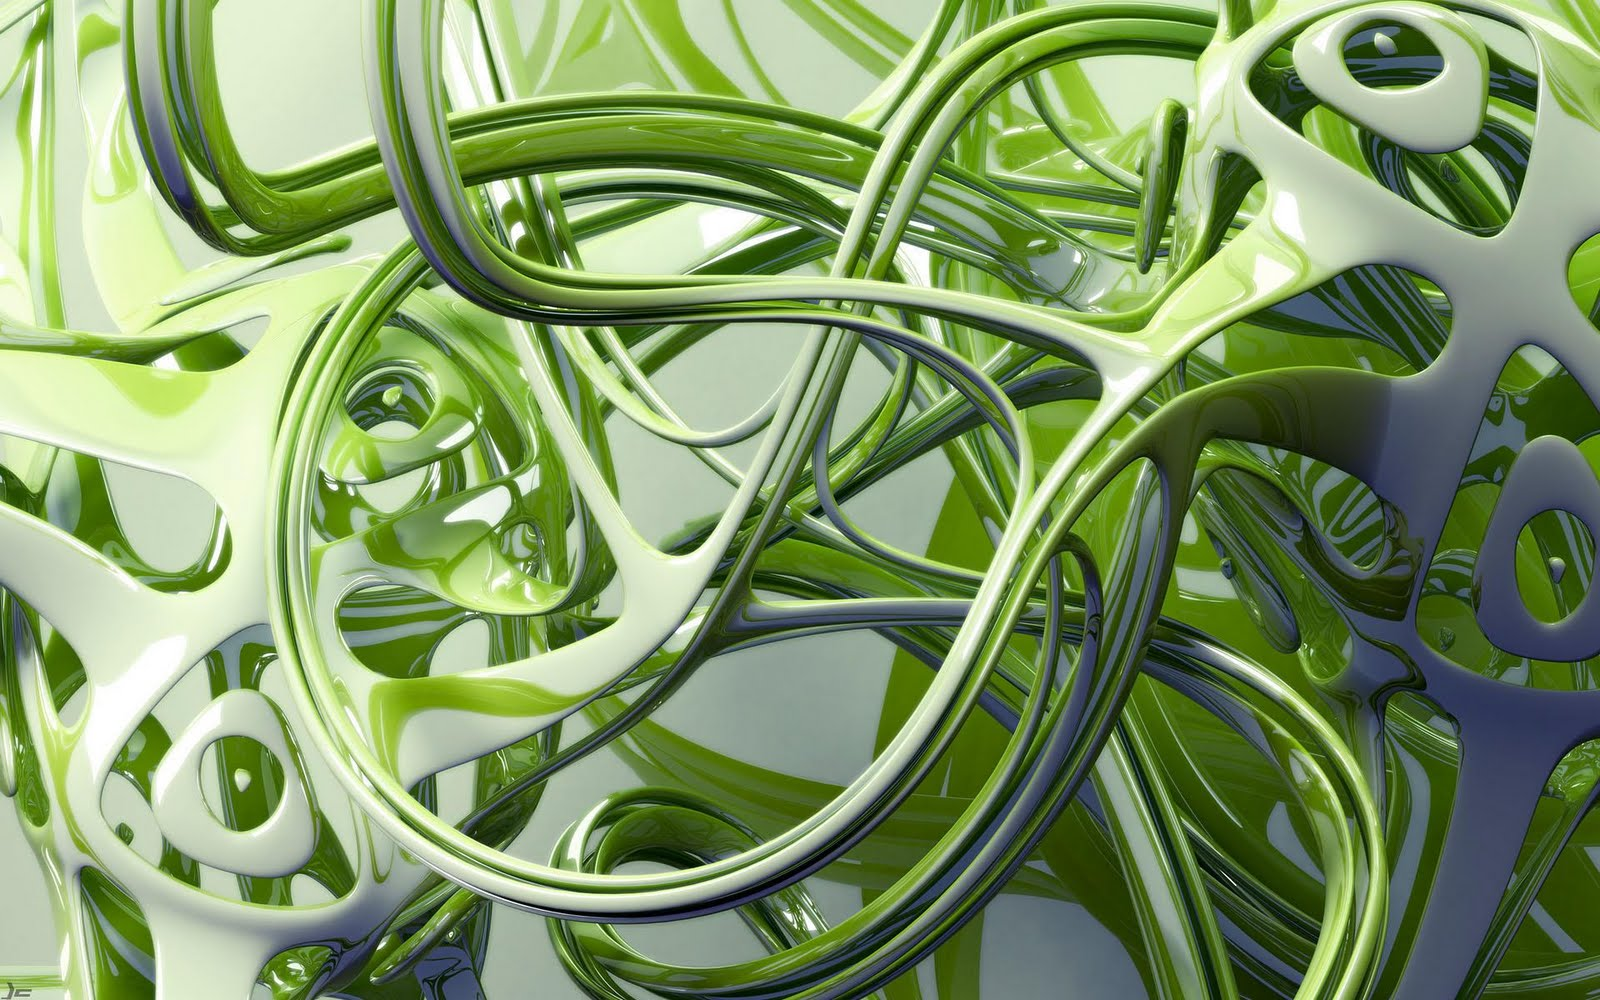 3d wallpaper, graphic art, green slime wallpaper